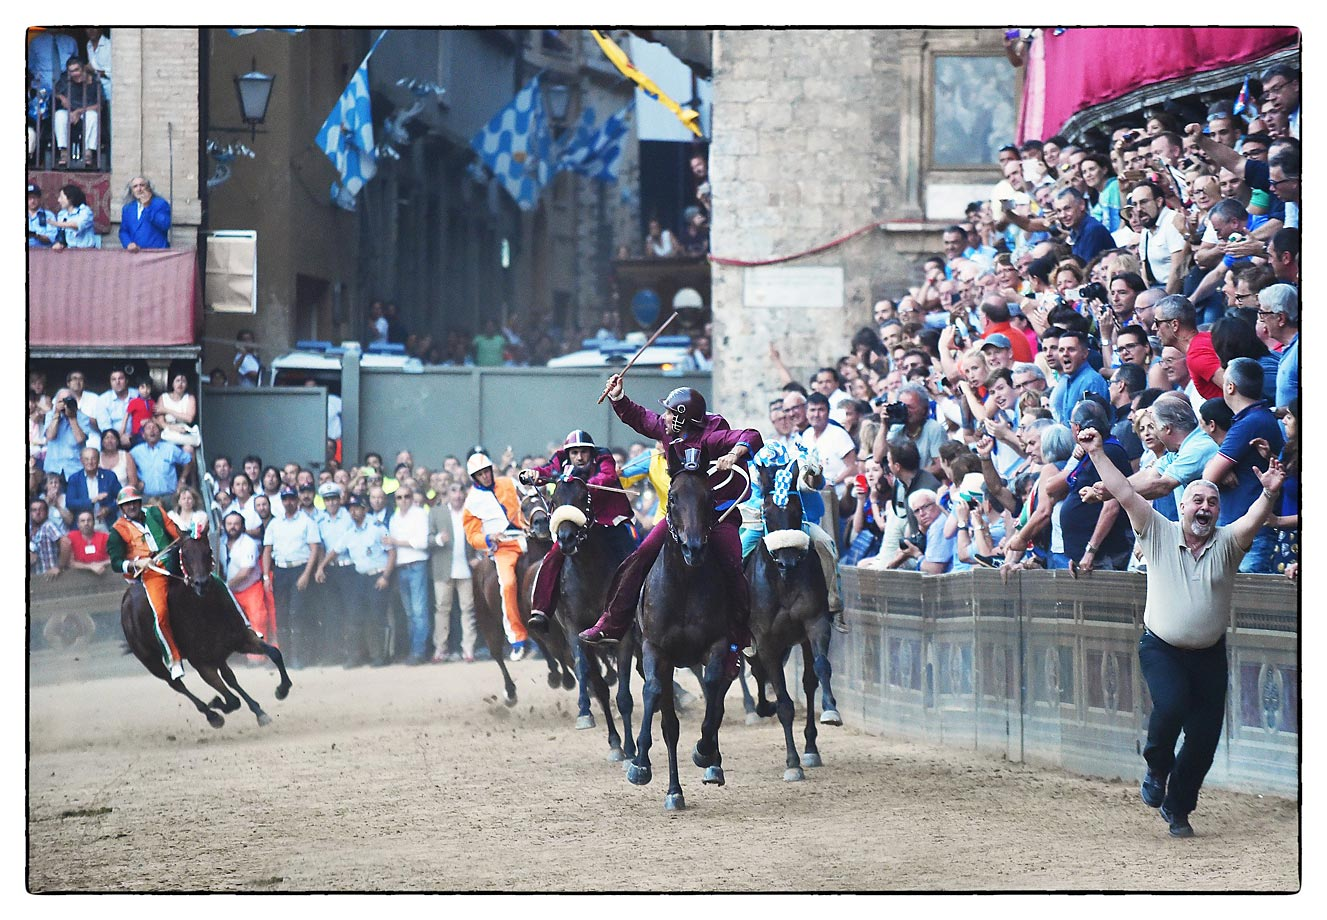 The Palio de Siena race — and a fan who should really find his seat.